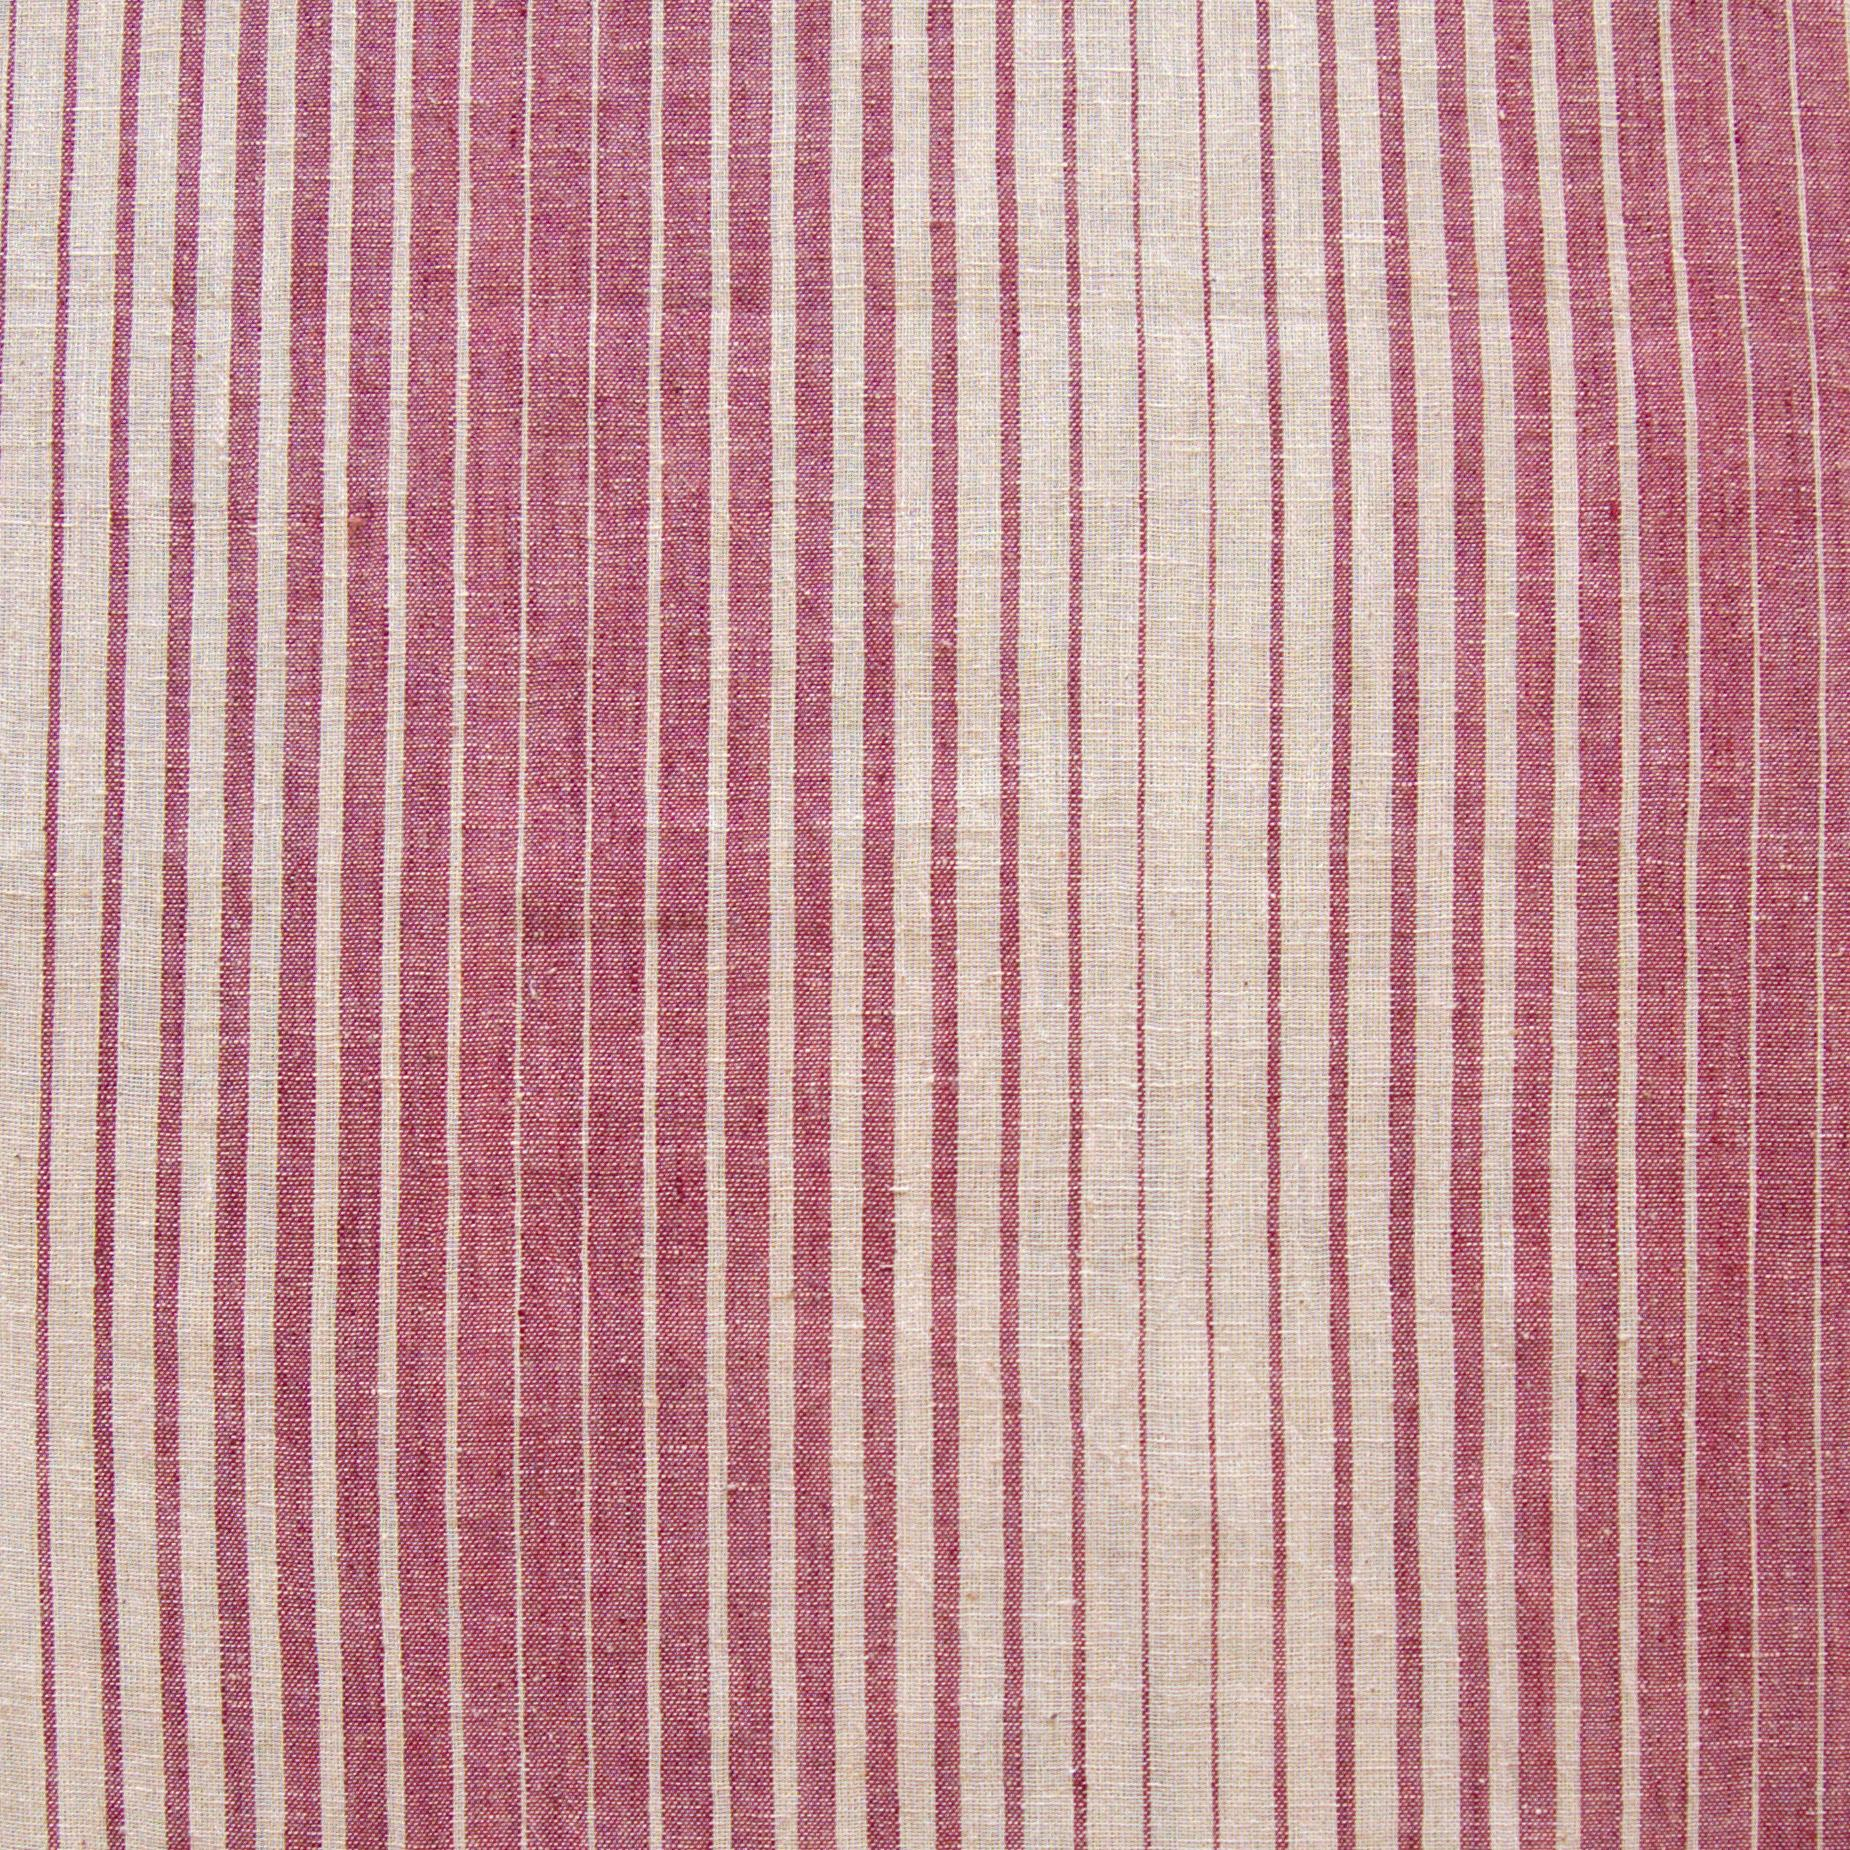 Organic Kala Cotton - Handloom Woven - Natural Dye - Red Aal Root - Fading Stripes - One By One - Flat